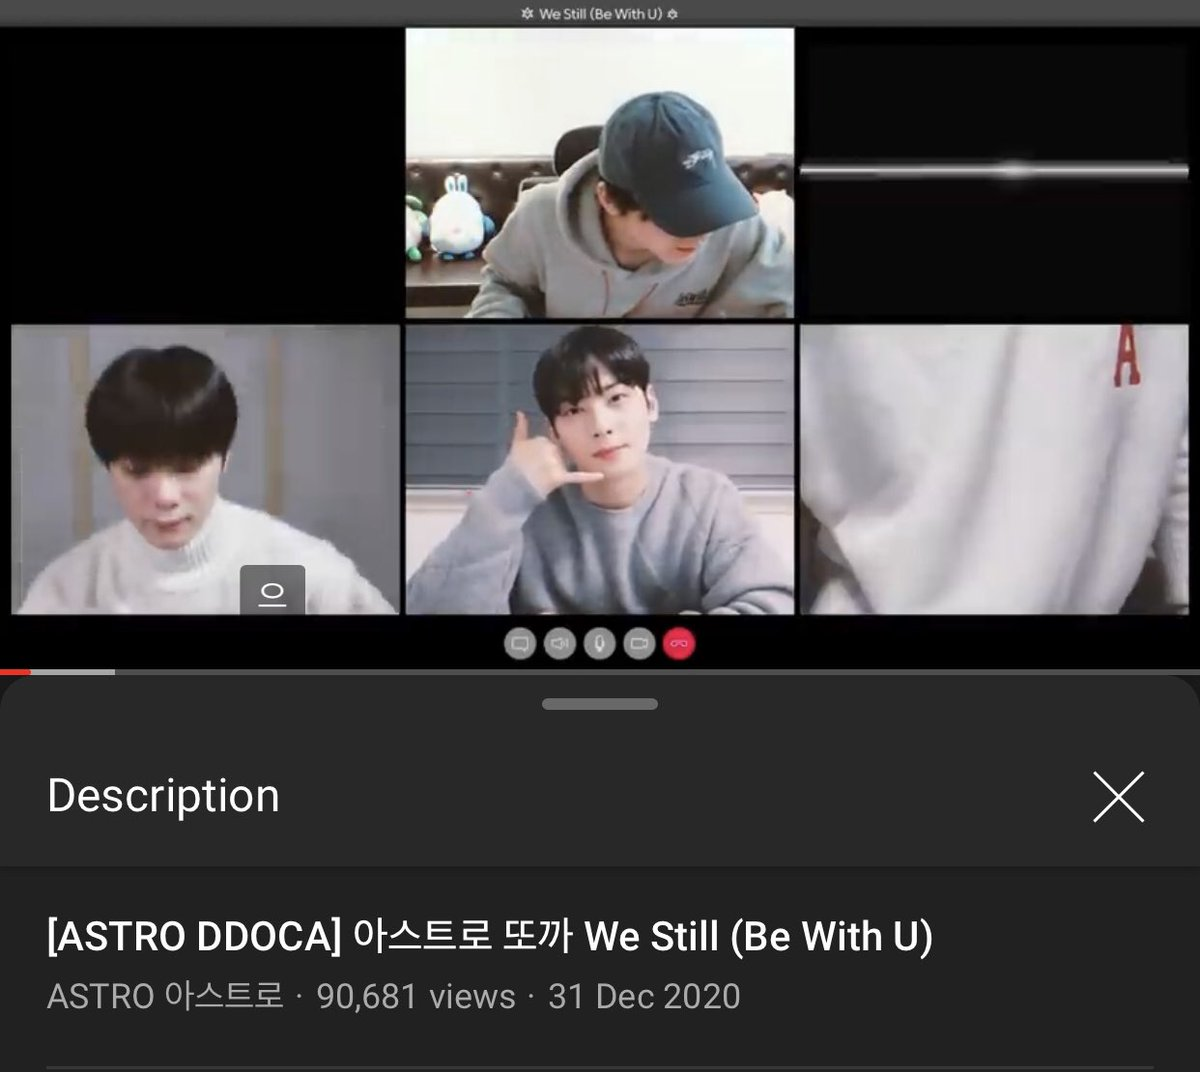 [📈] 210101 2:00 AM KST 'We Still (Be With U)' DDOCA Official Channel: 90,681 views (🔺13,084) 🔗youtu.be/zyk2KpV6avk Naver TV: 99,570 views (🔺5,288) 🔗naver.me/FVPwMoN9 [ #아스트로 #ASTRO_BeWithU @offclASTRO ]